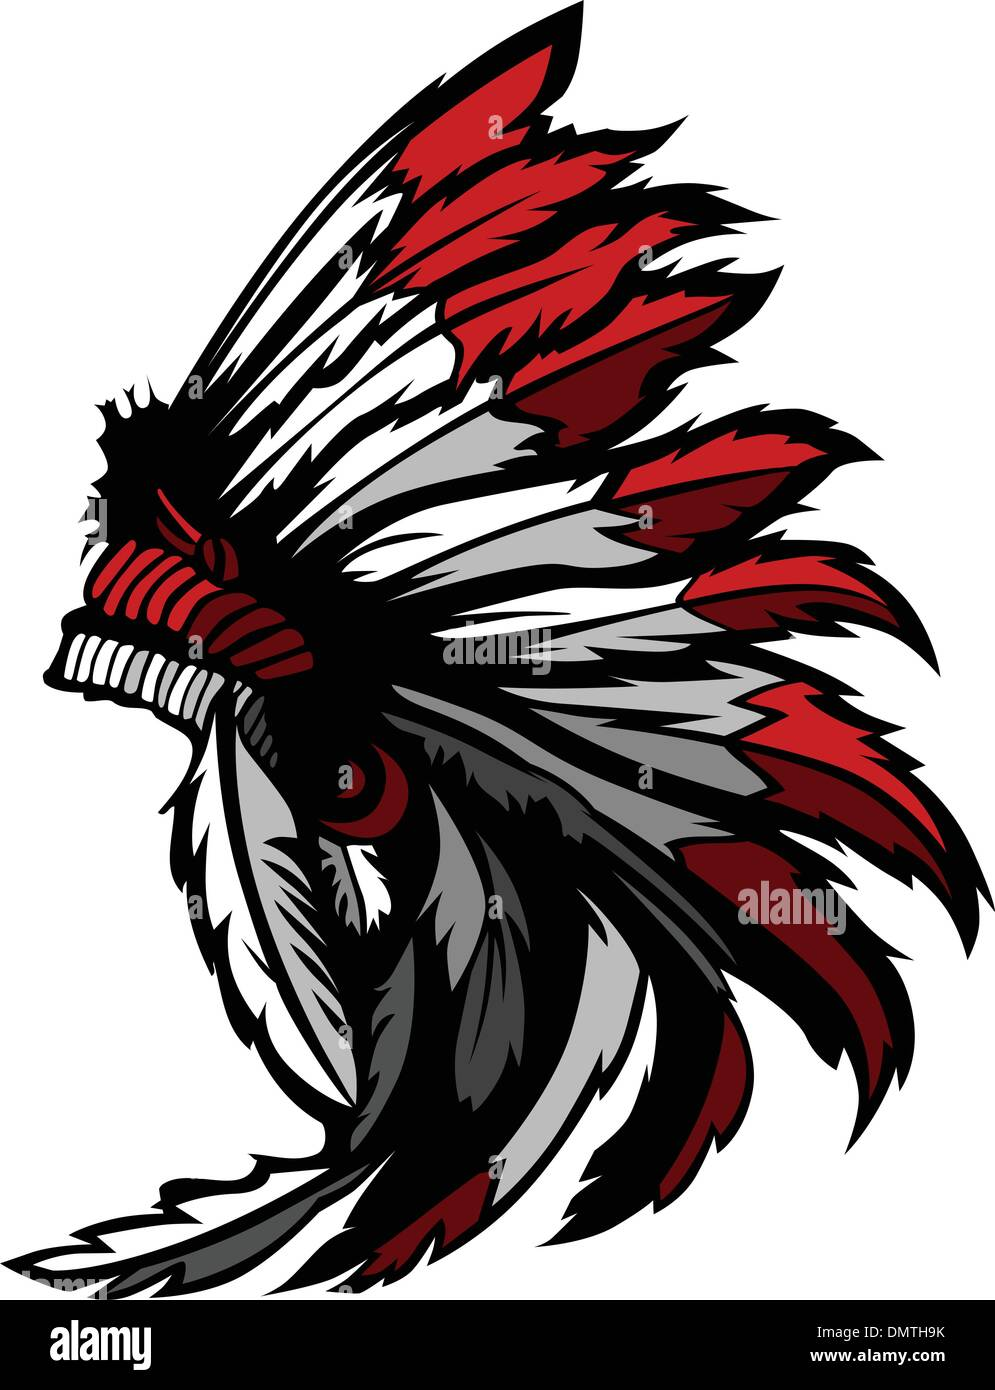 American Native Indian Feather Headdress Mascot Vector Graphic - Stock Image